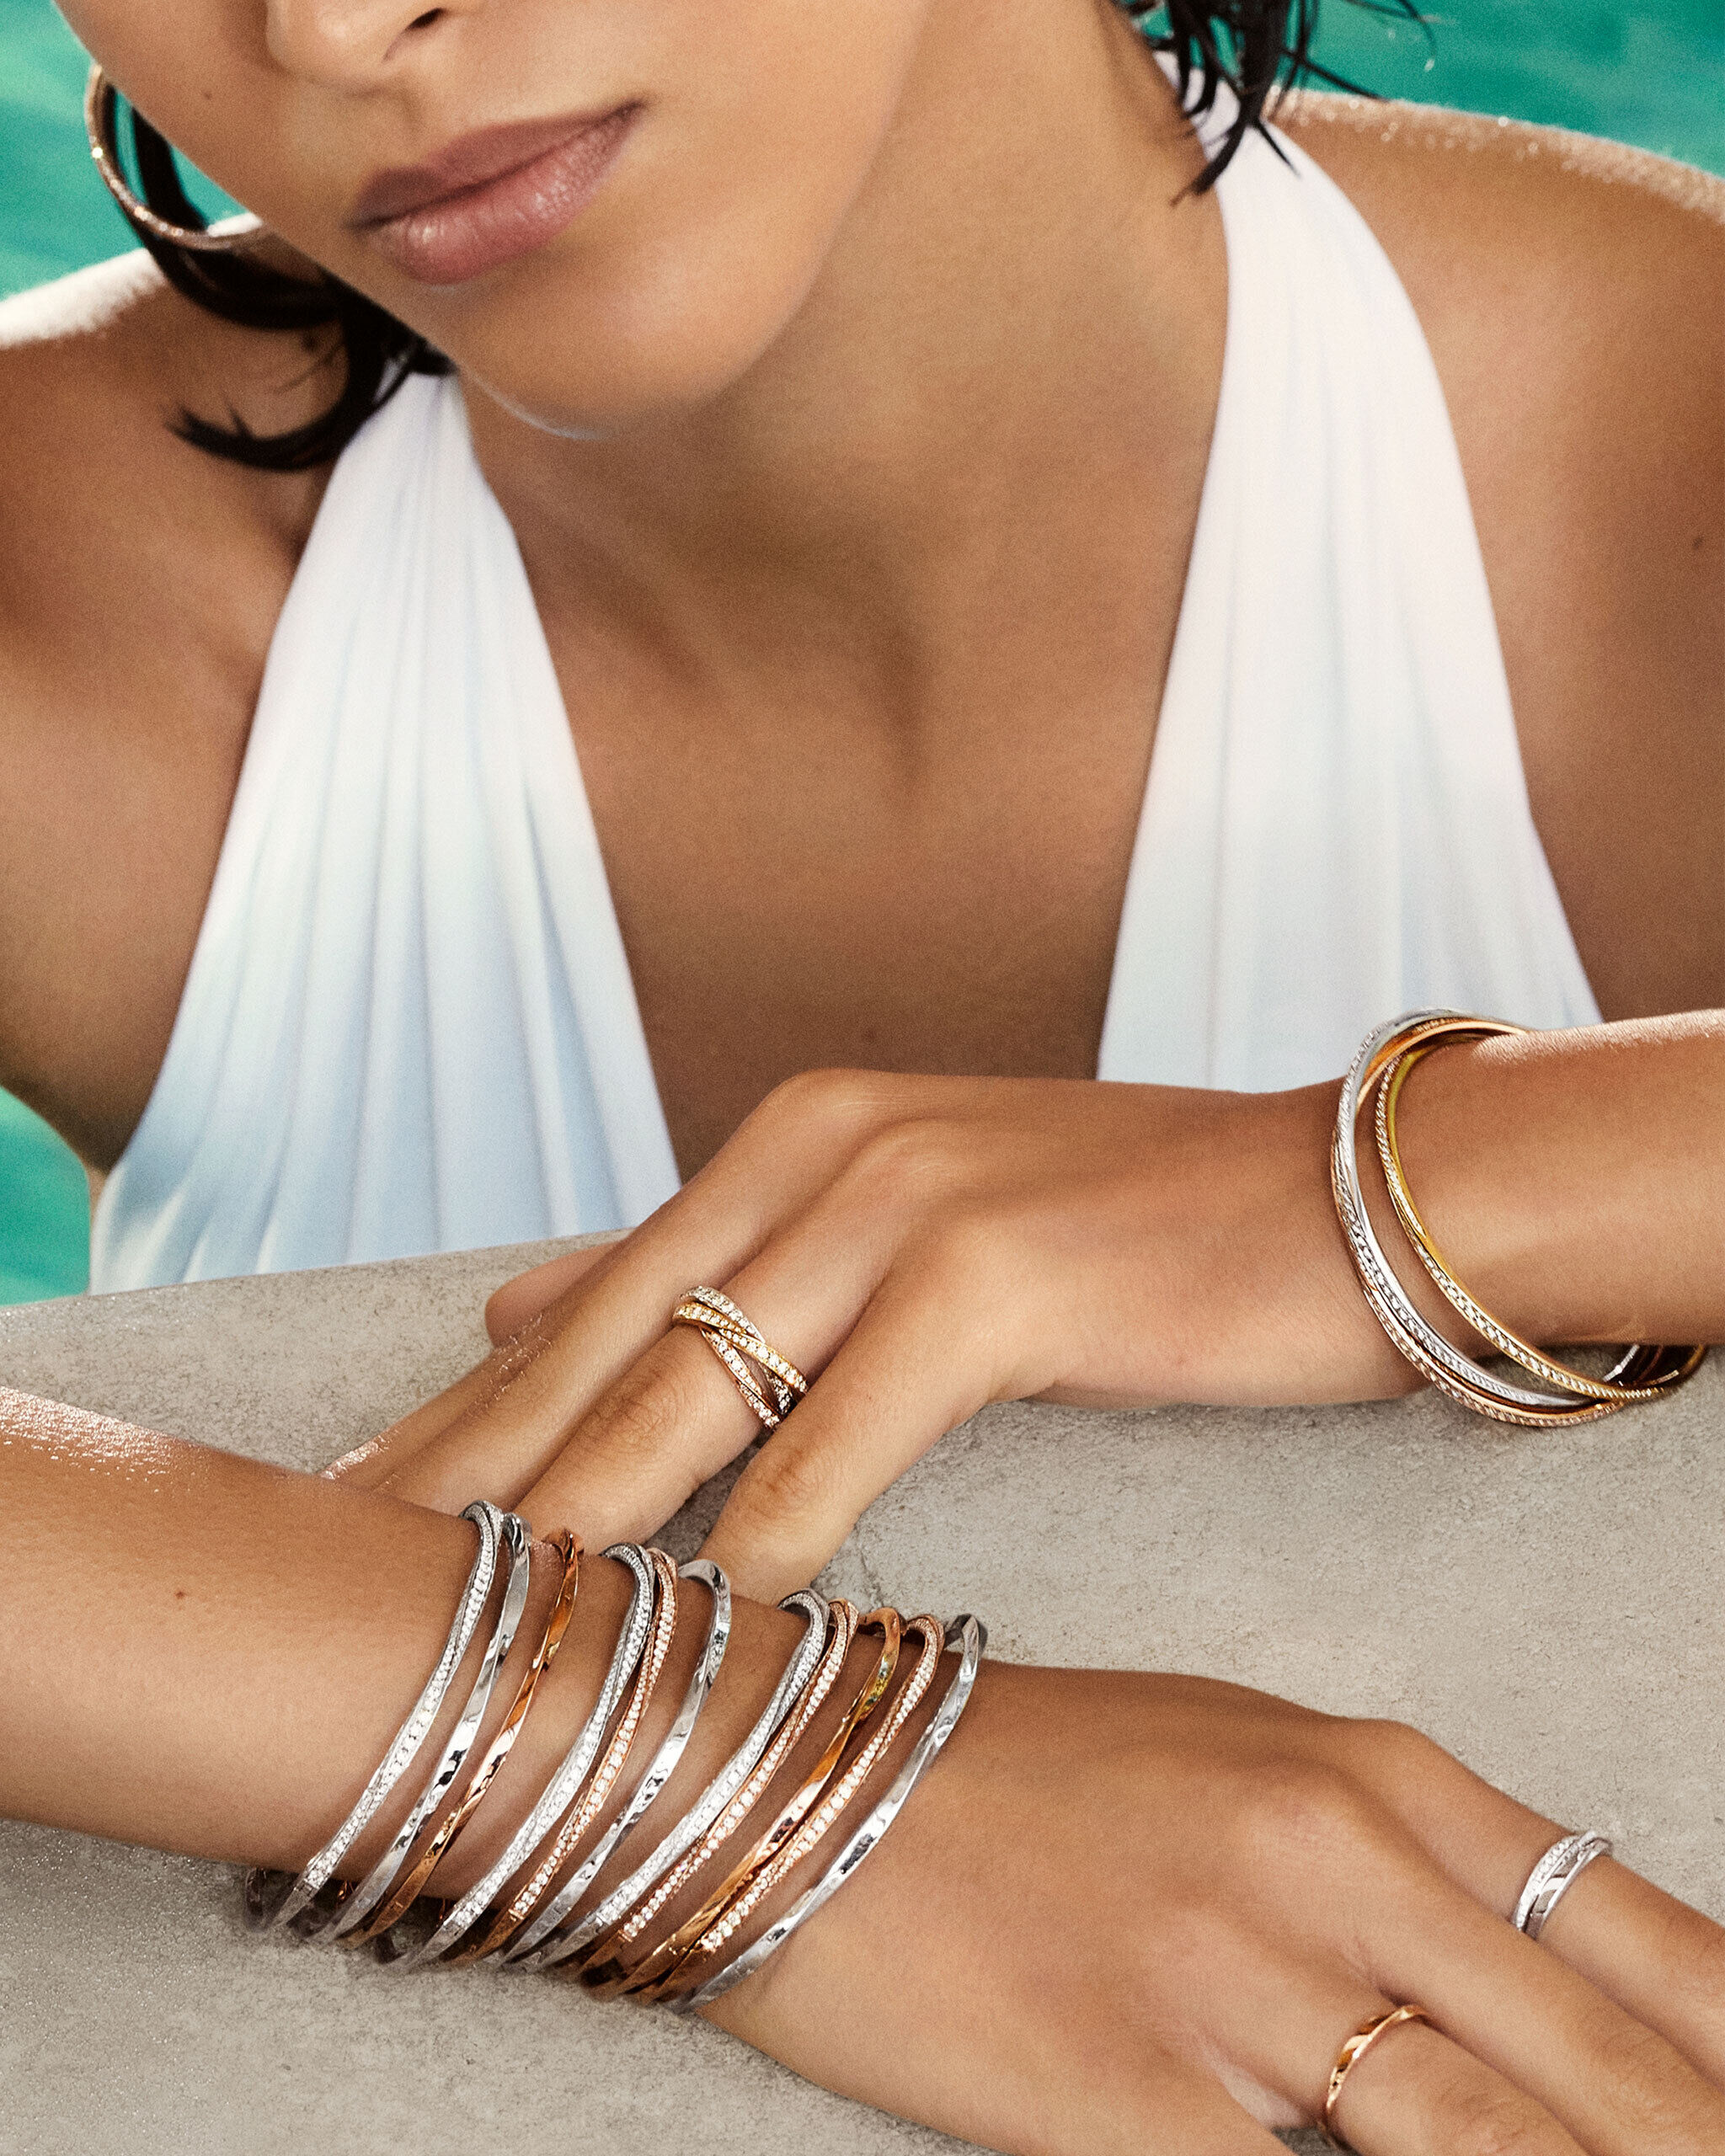 Model wears Graff Spiral collection diamond jewellery in a pool